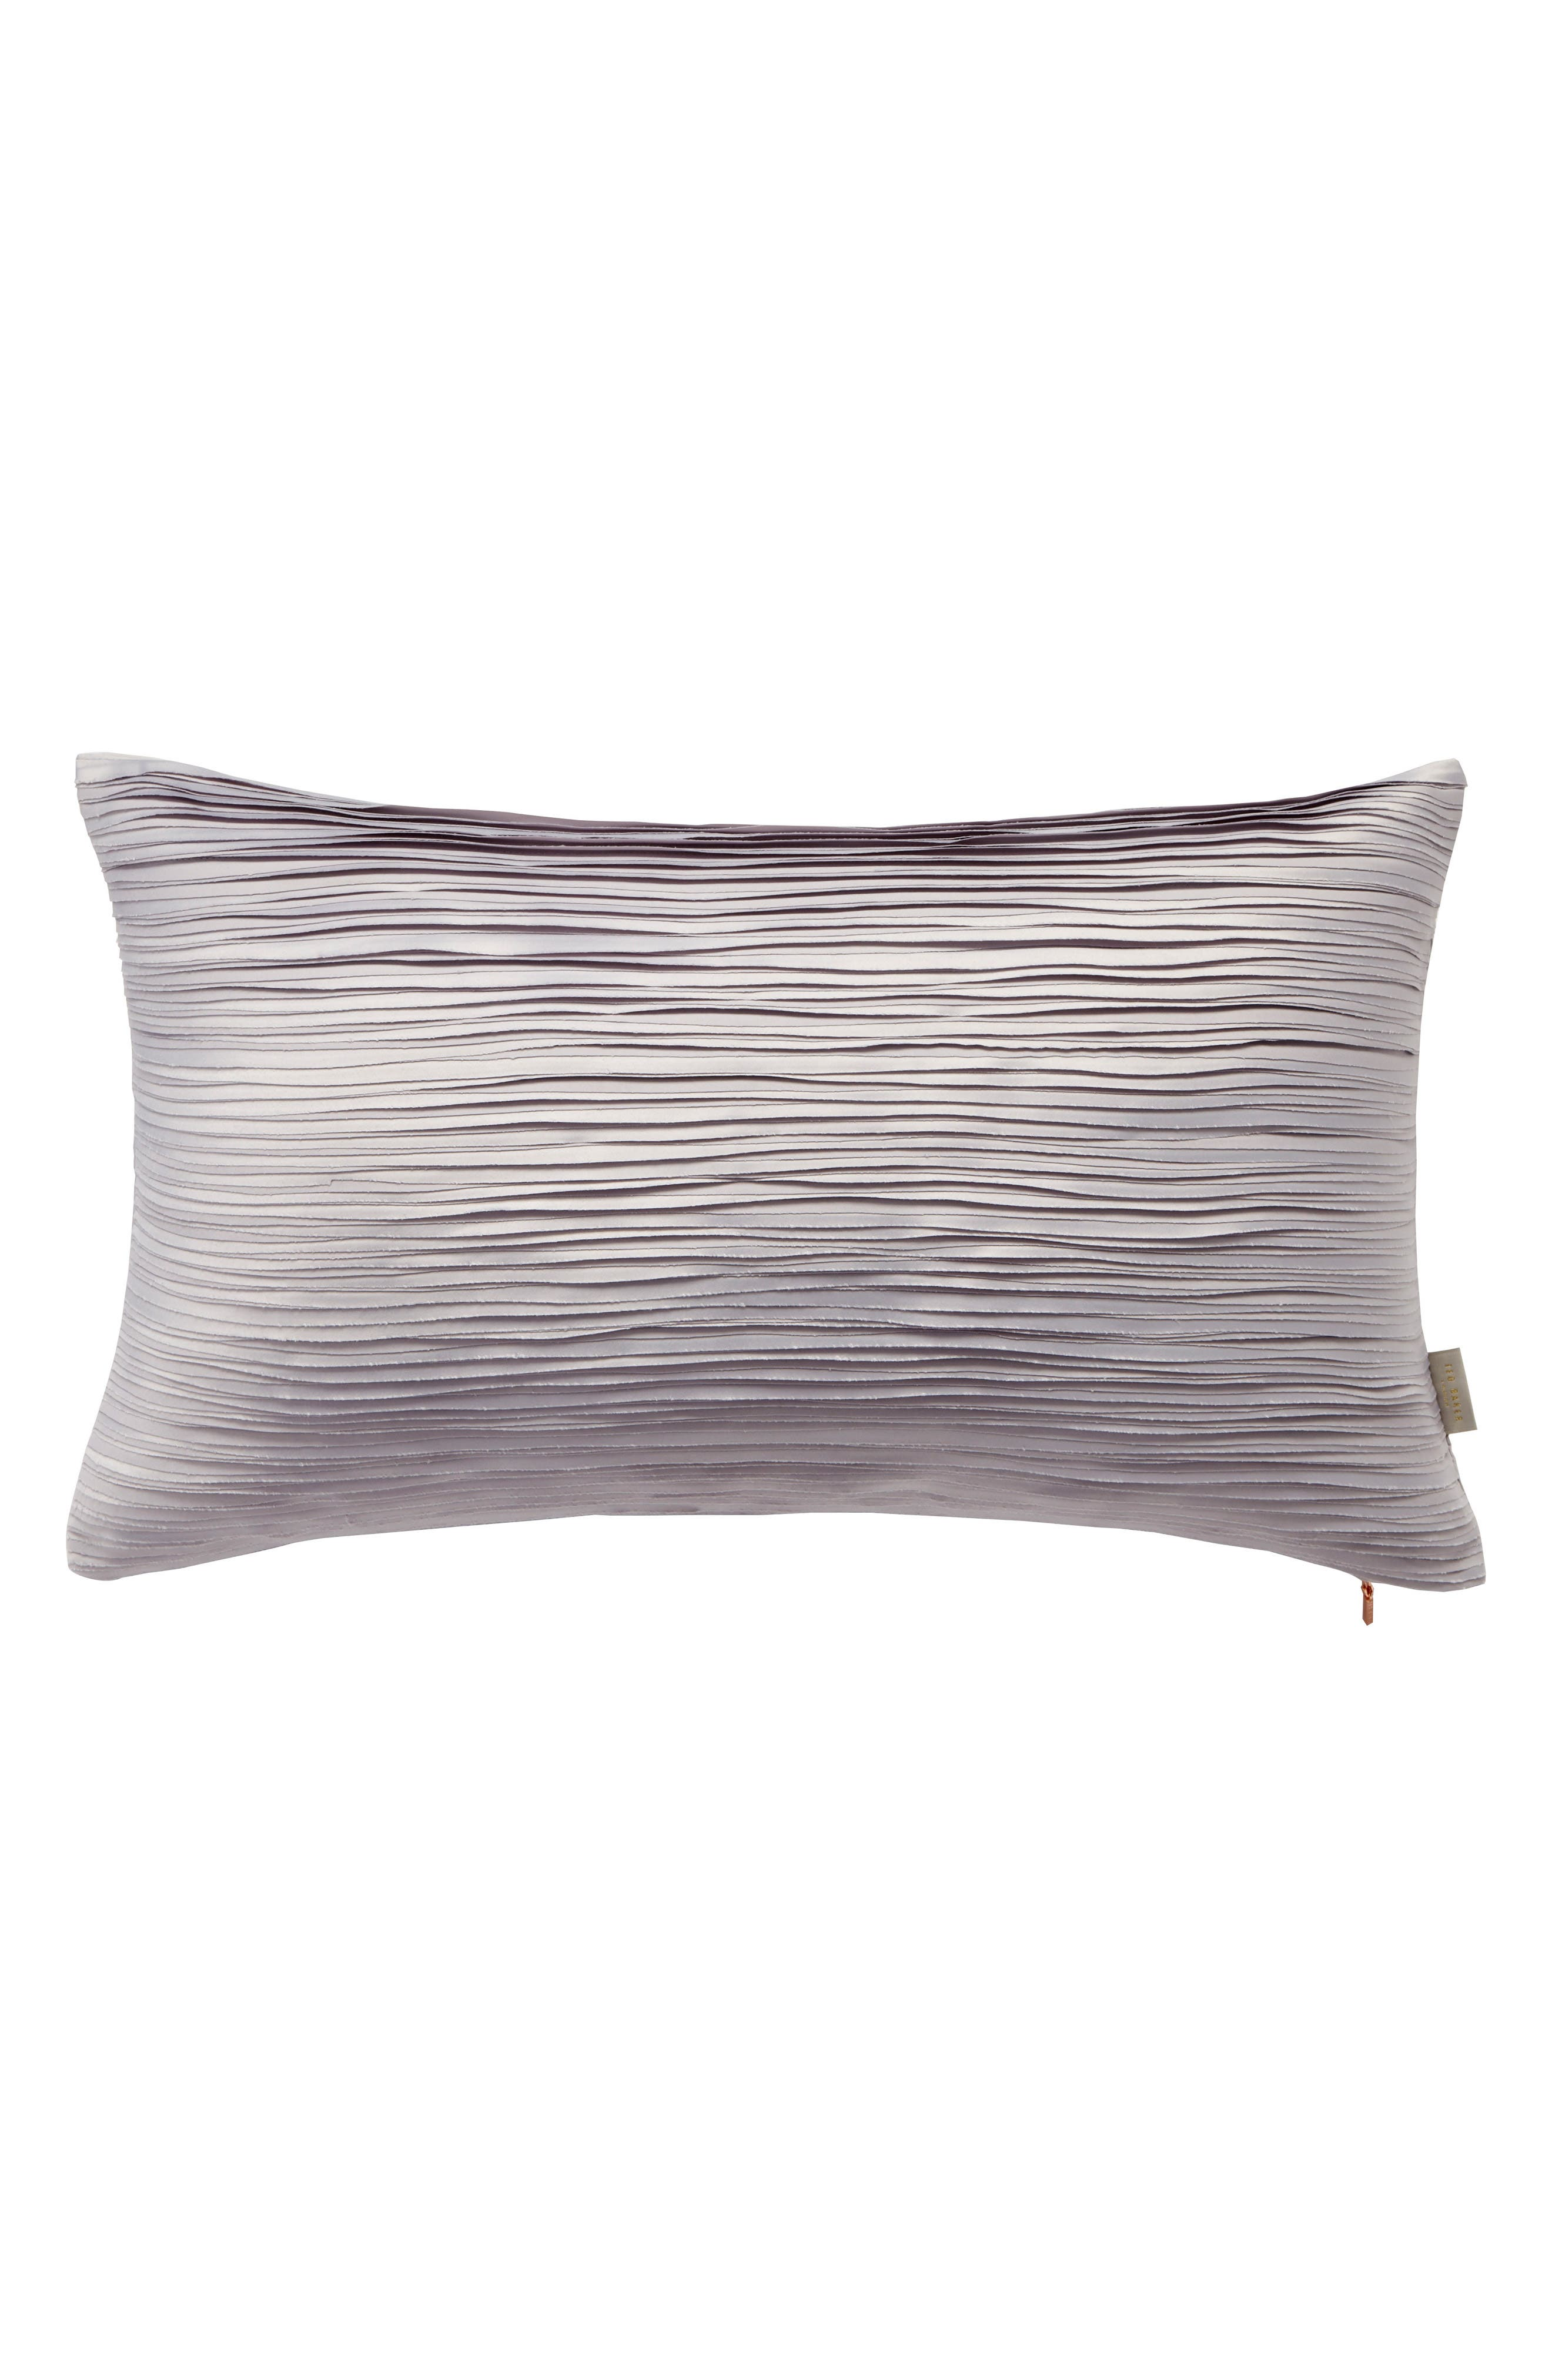 Alternate Image 1 Selected - Ted Baker London Ruched Accent Pillow